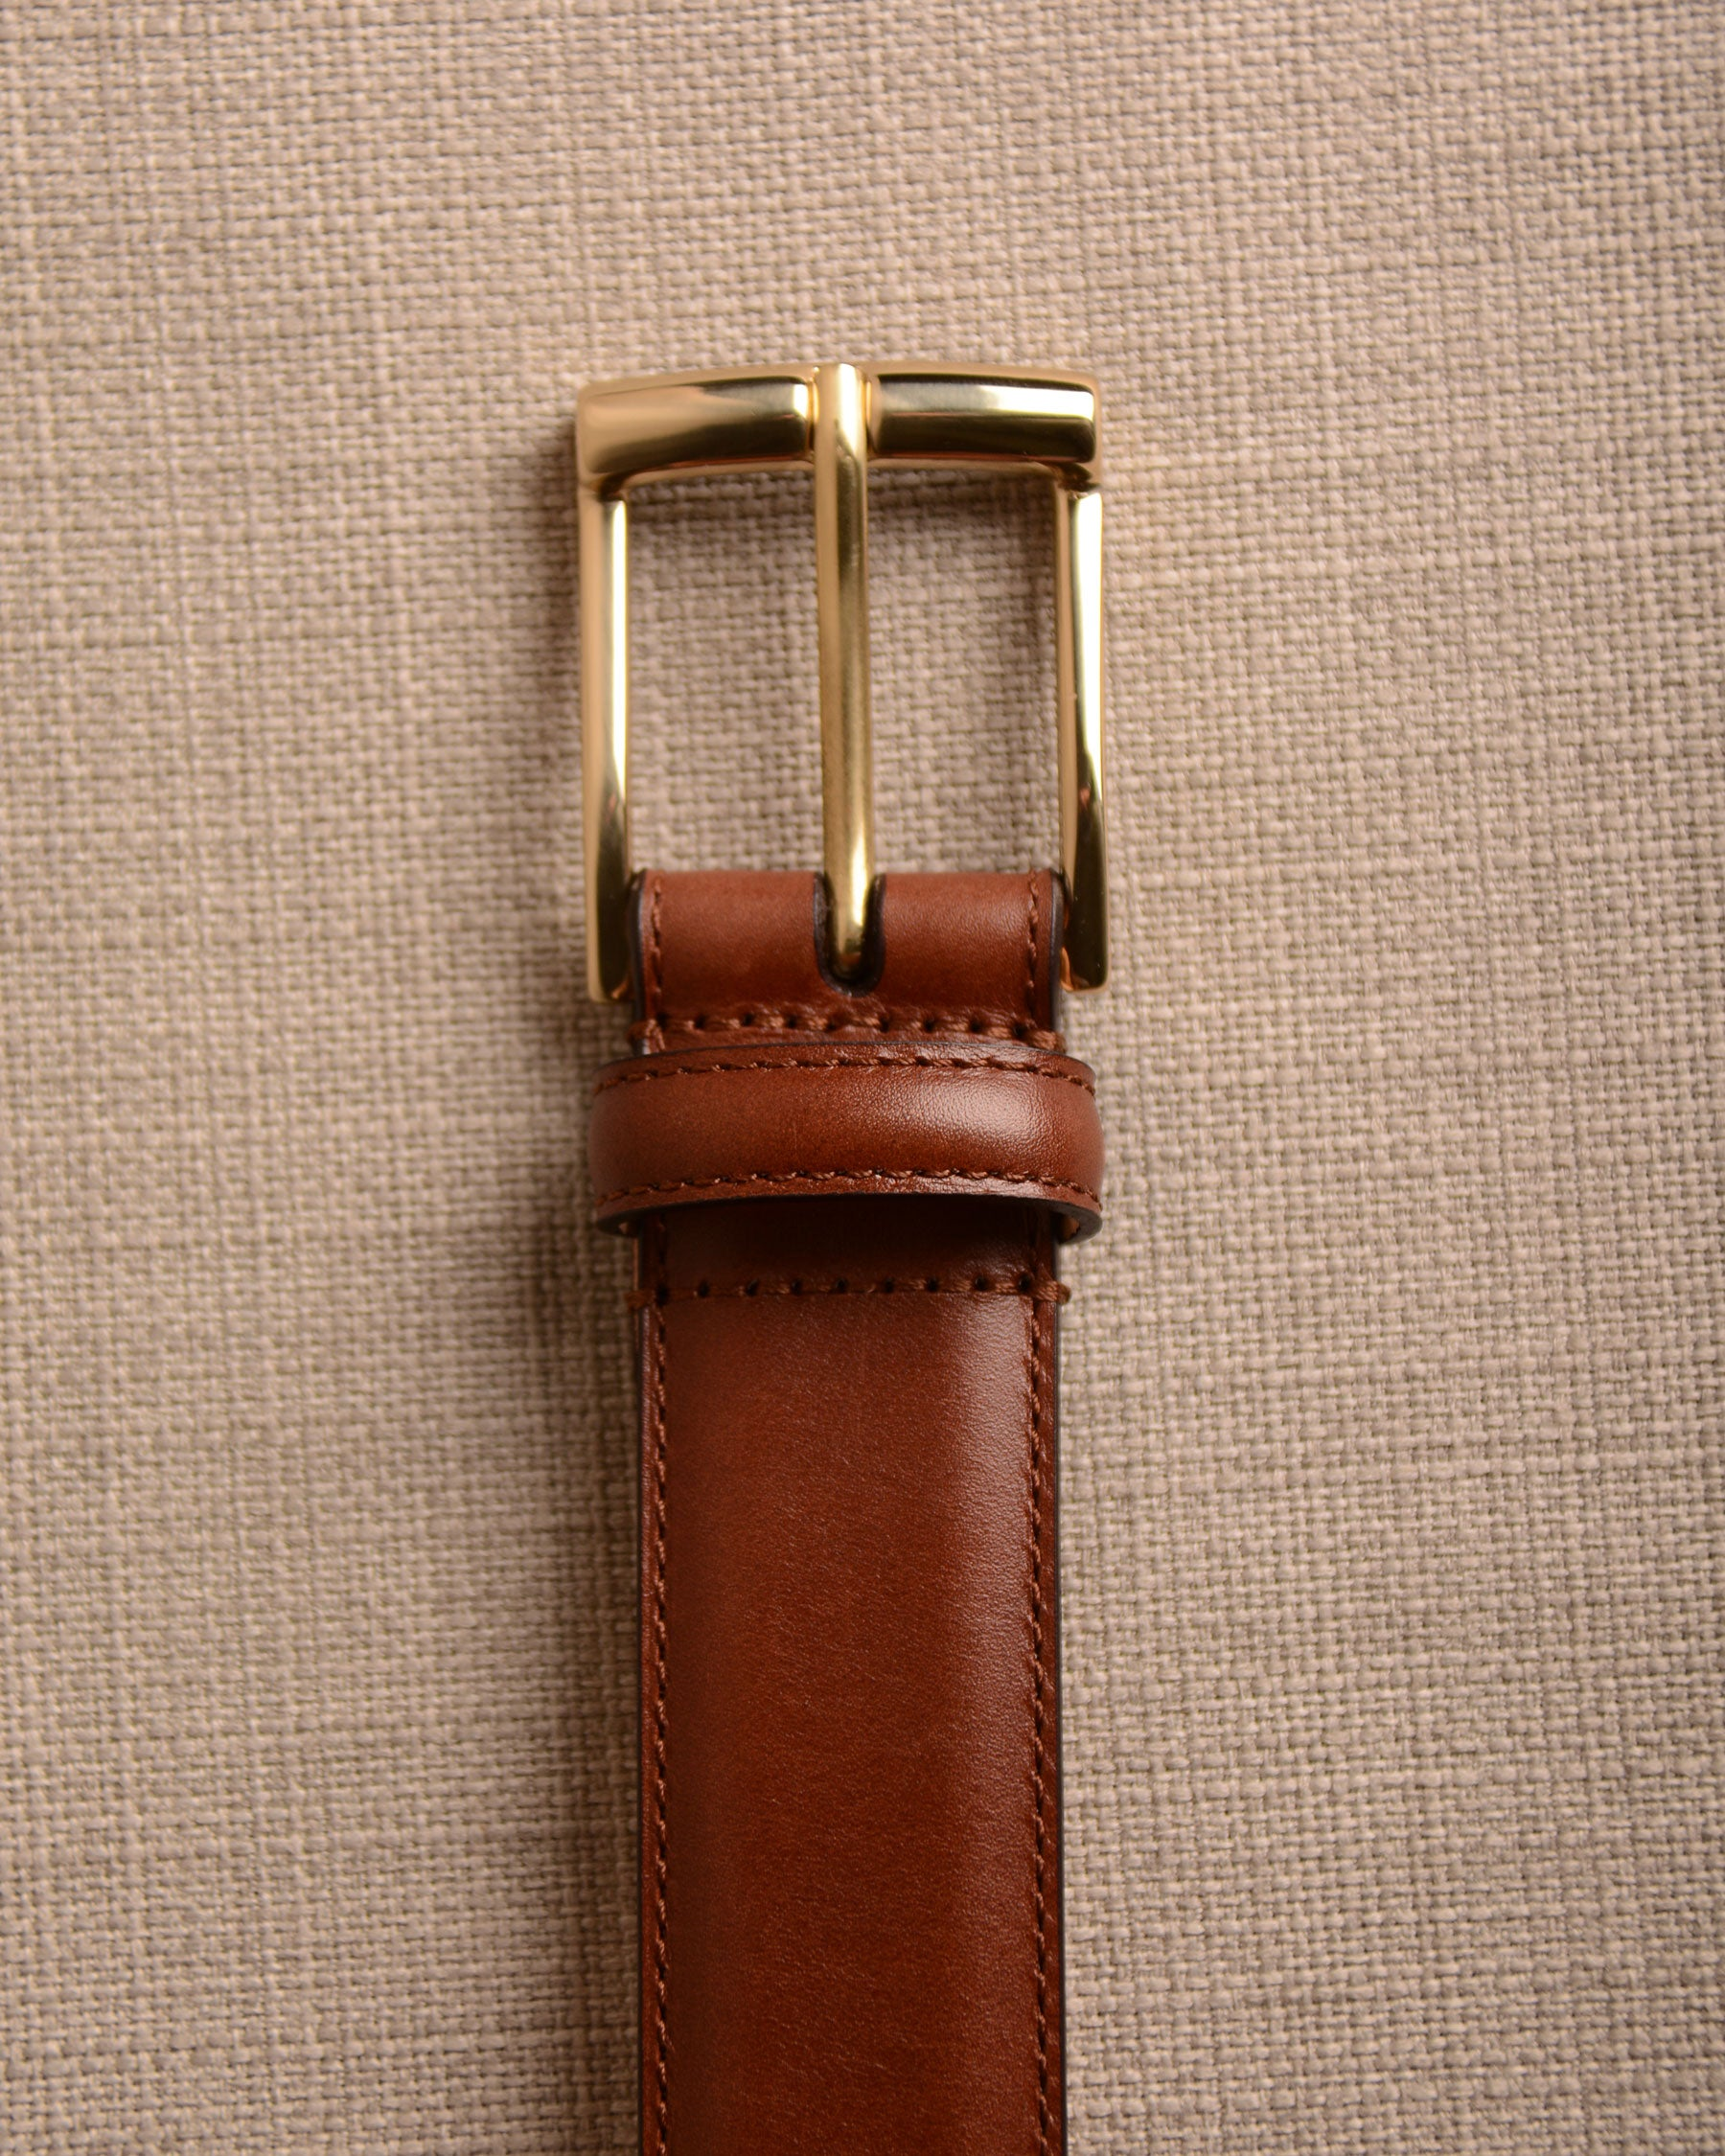 Crockett & Jones - Belt Chestnut Calf